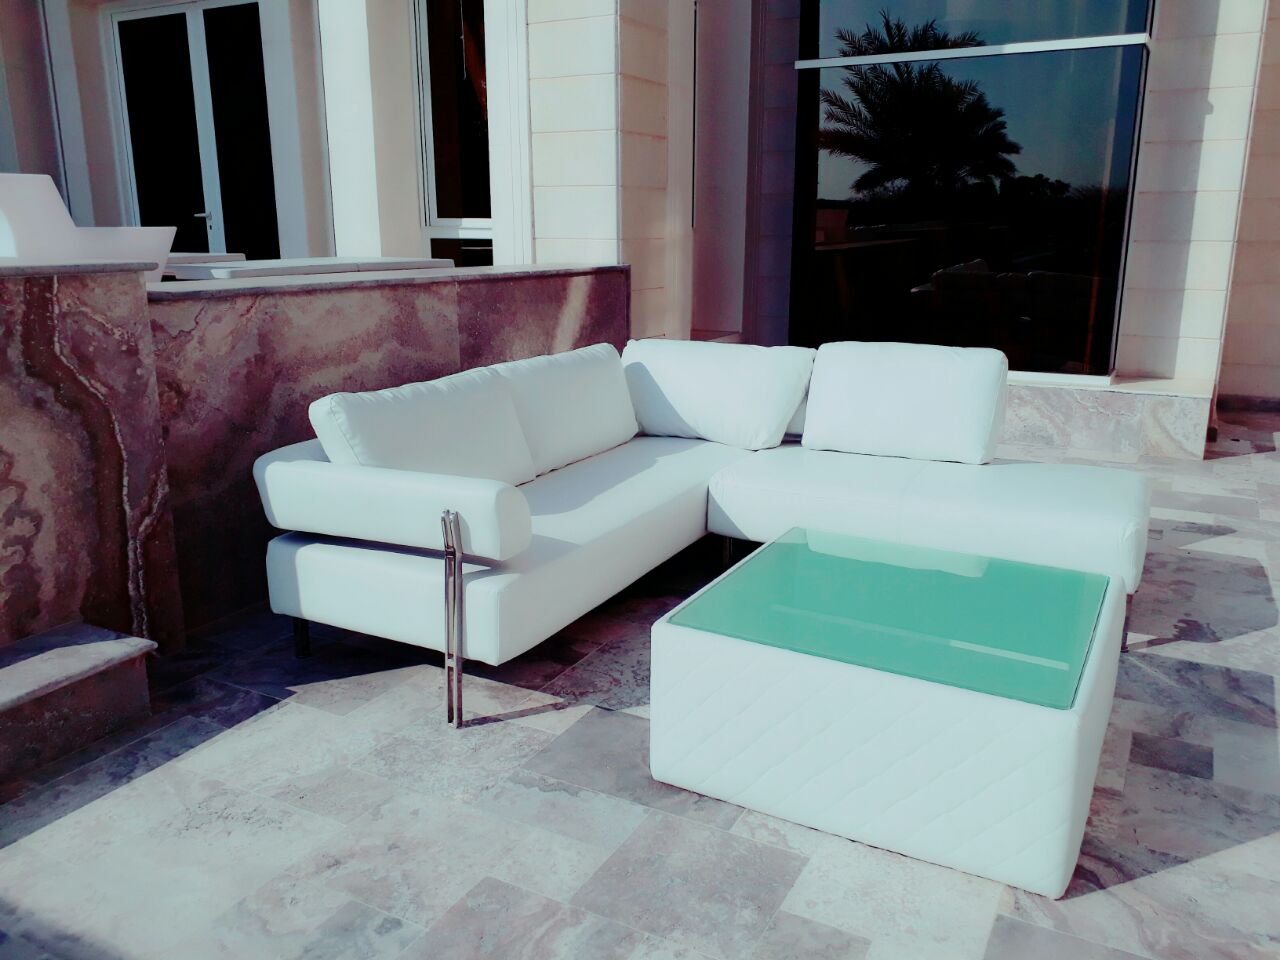 sofa covers online dubai studio converting outdoor rent or buy chelsea l shaped event rental